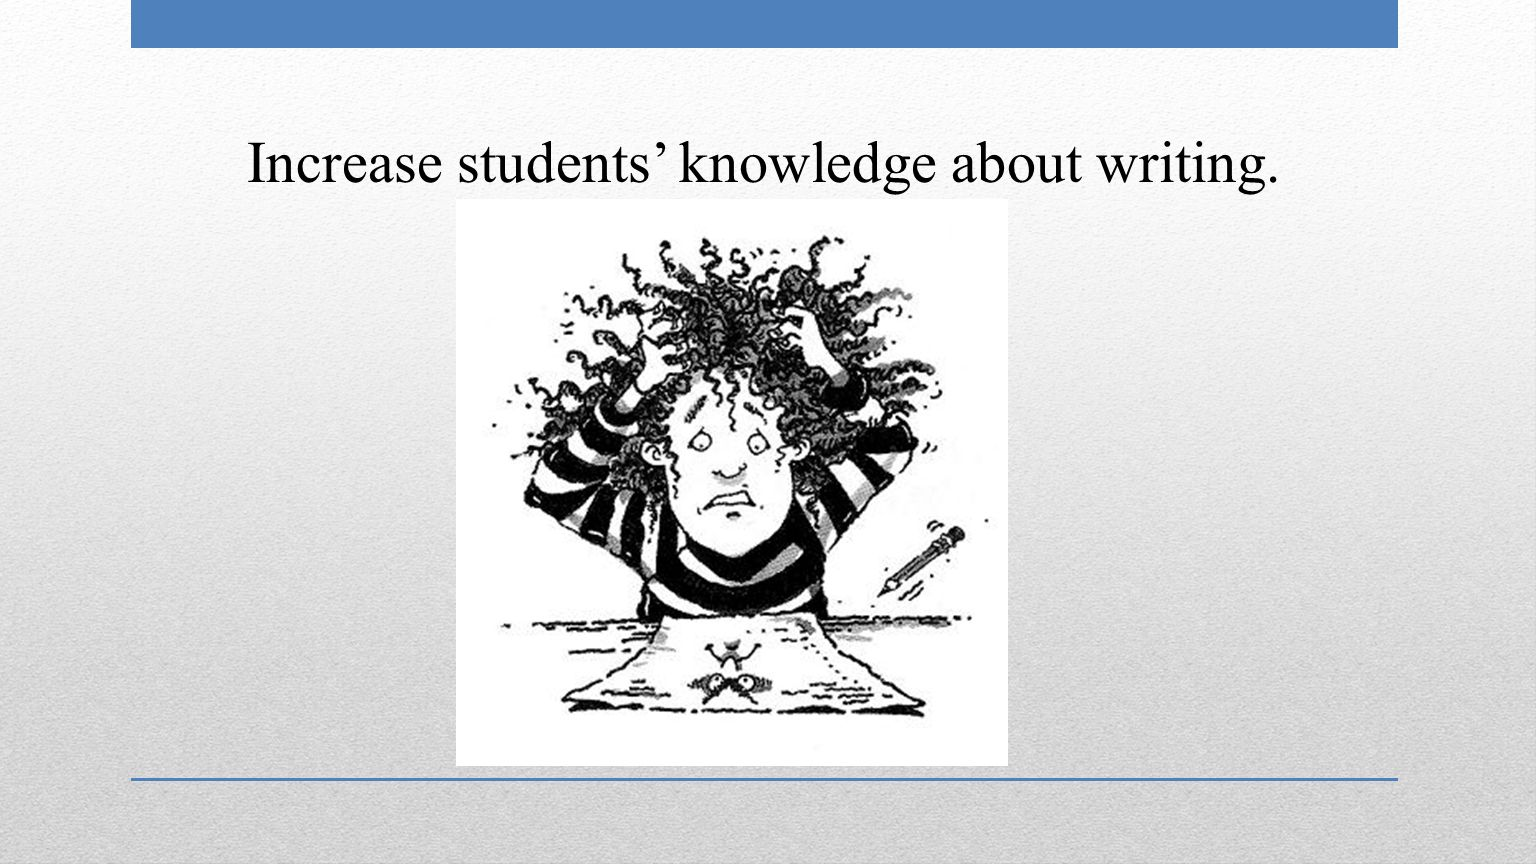 Increase students' knowledge about writing.